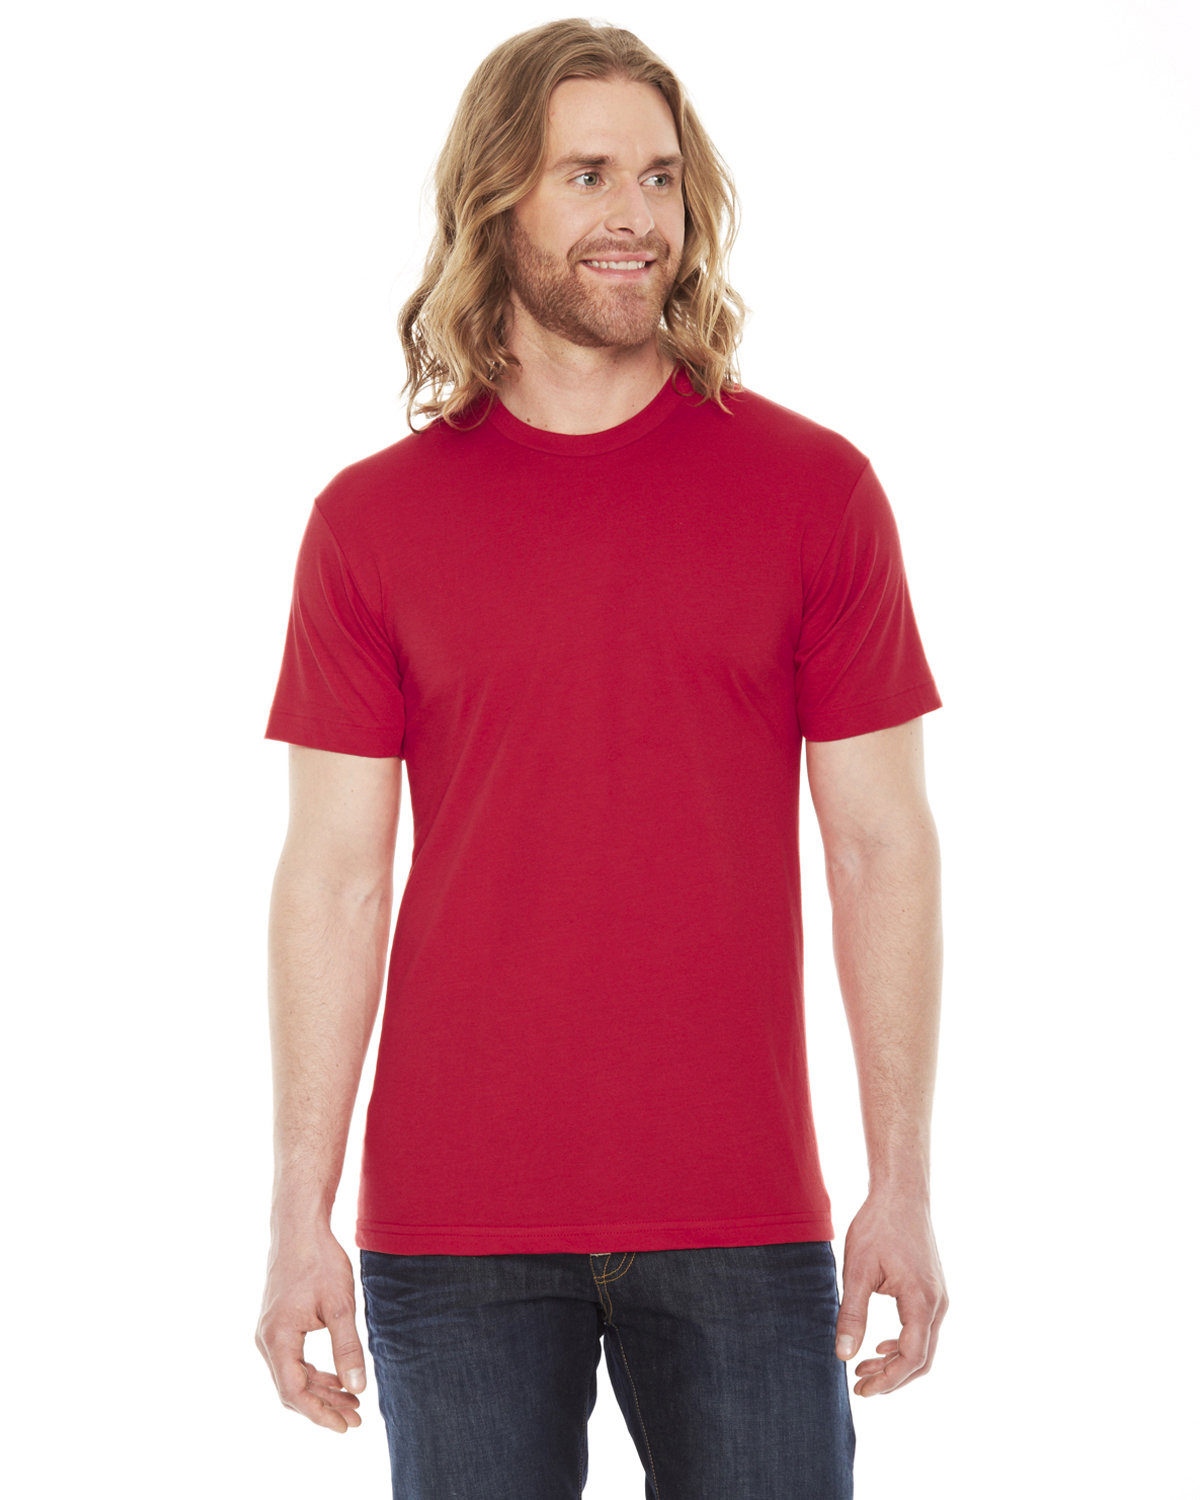 American Apparel Unisex Classic T-Shirt RED